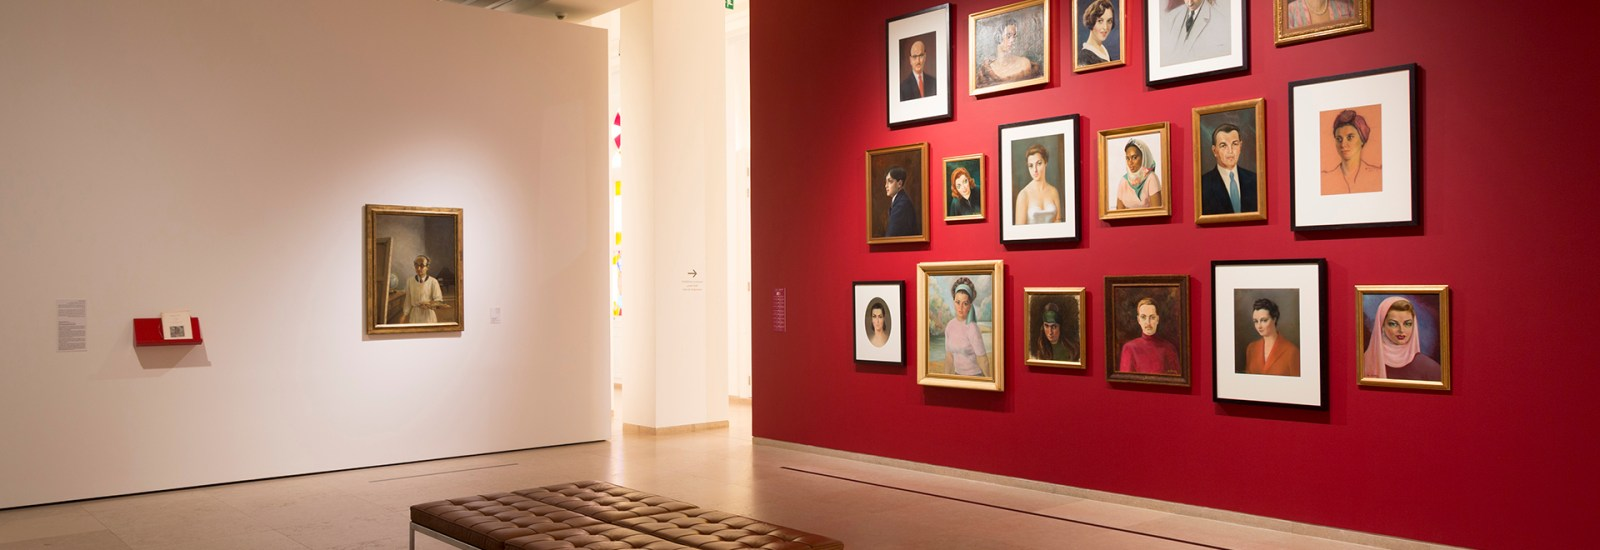 arts and culture abound at the Sursock museum in Lebanon